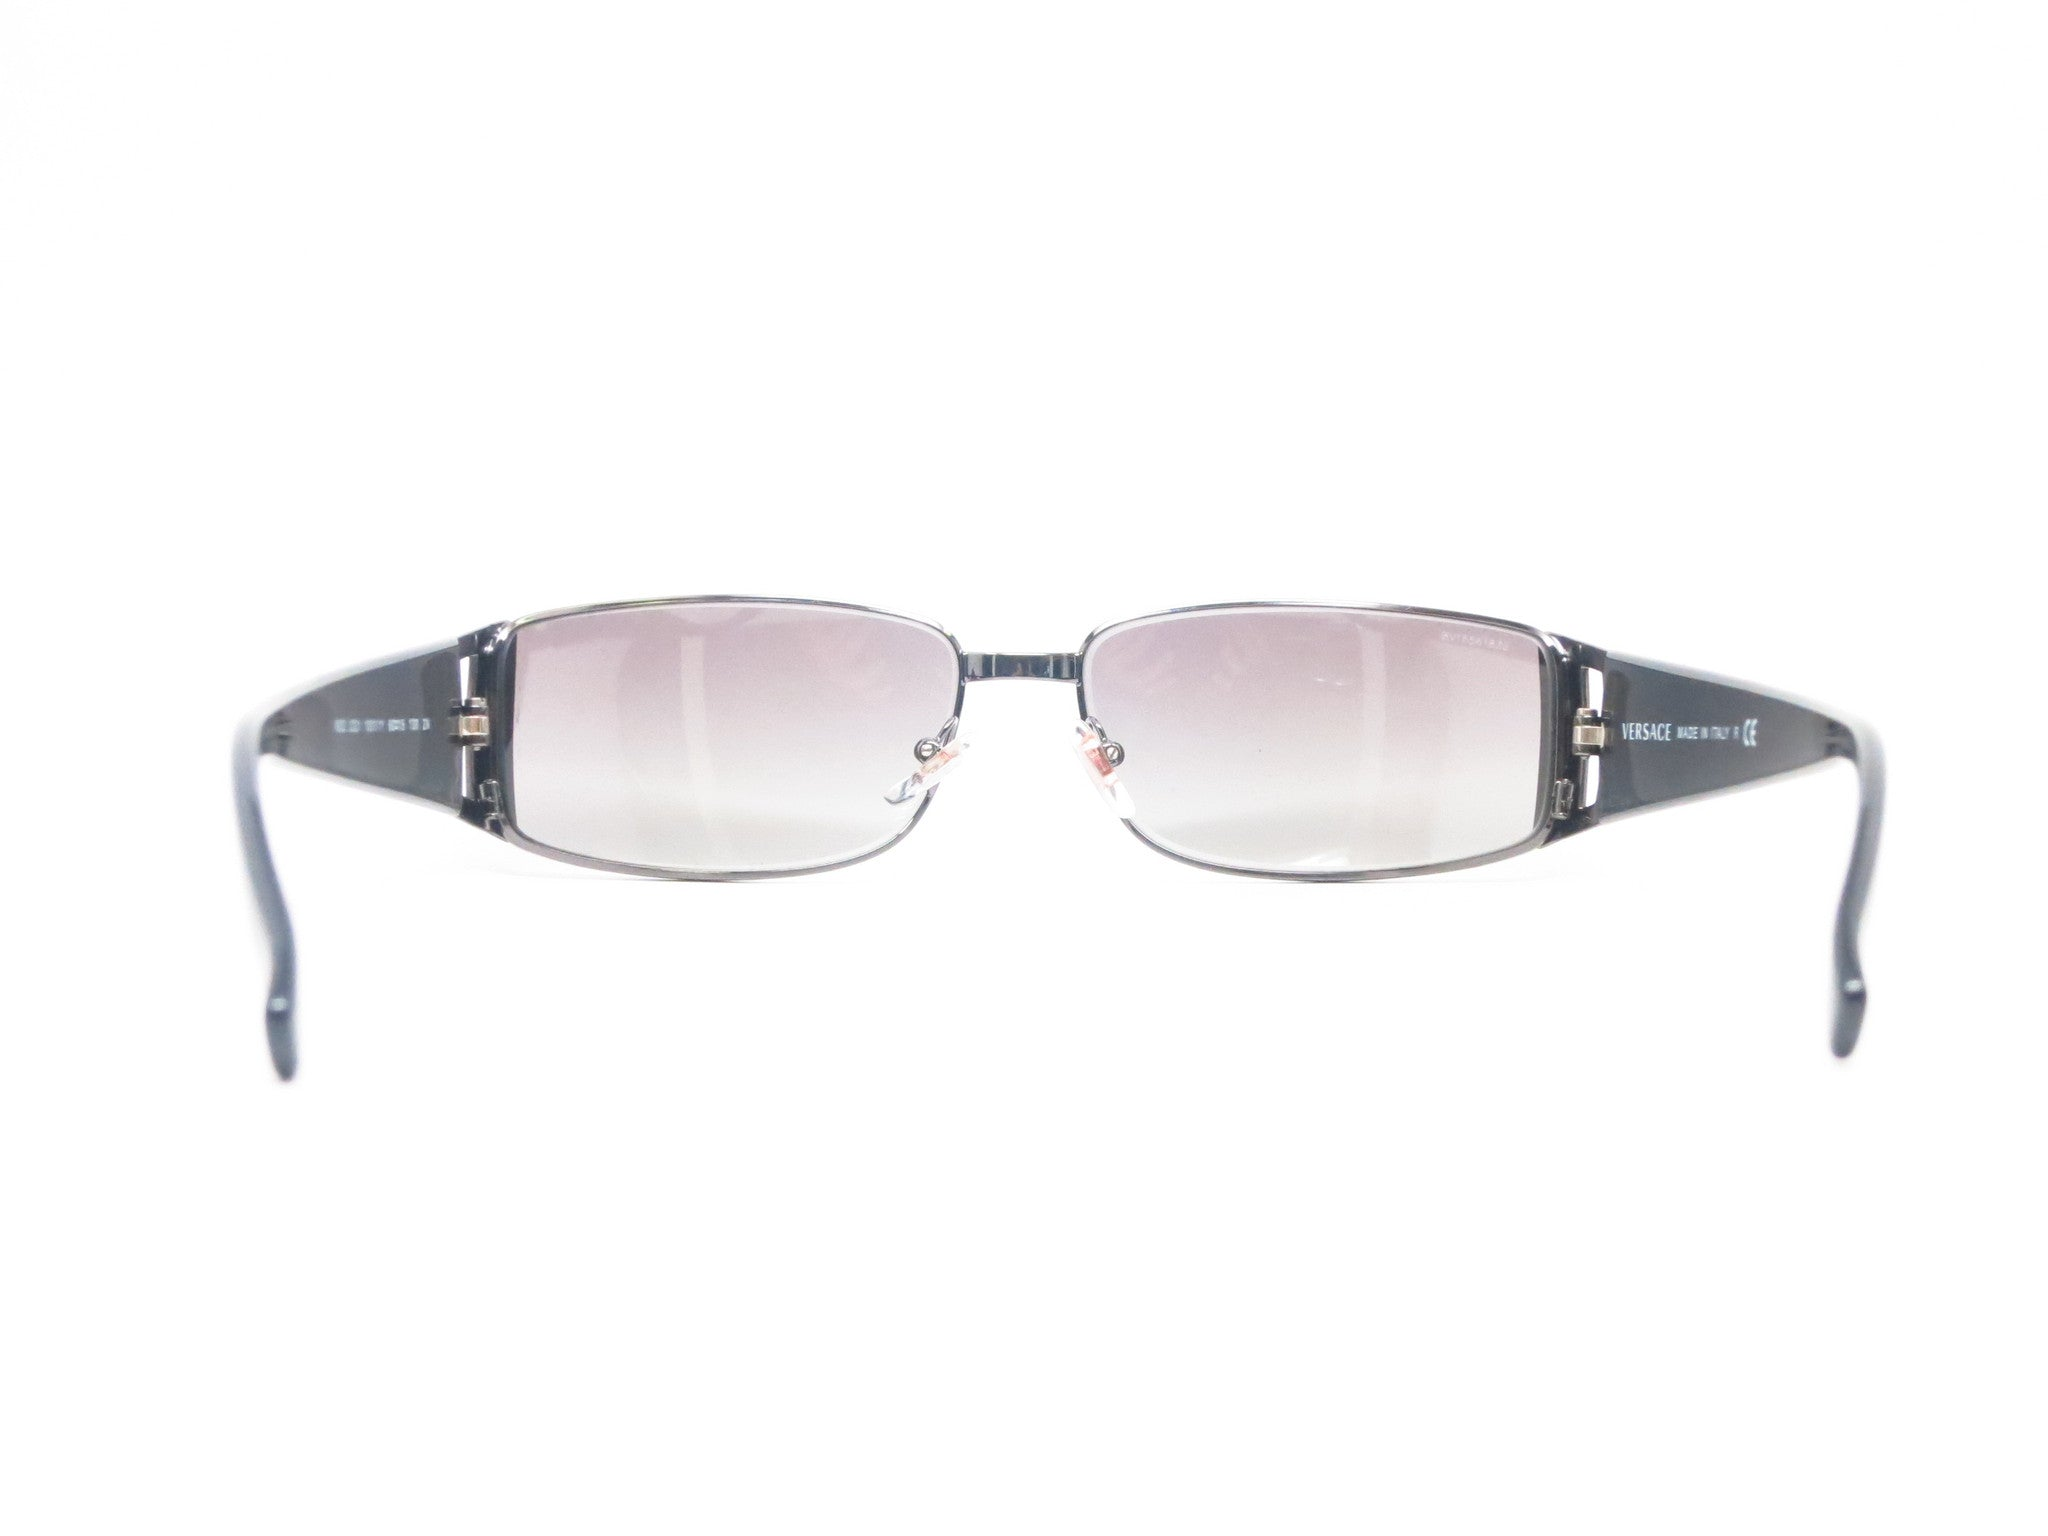 8006dd7cb5ce ... Versace VE 2021 Gunmetal 1001 11 Gunmetal Sunglasses - Eye Heart Shades  - Versace ...